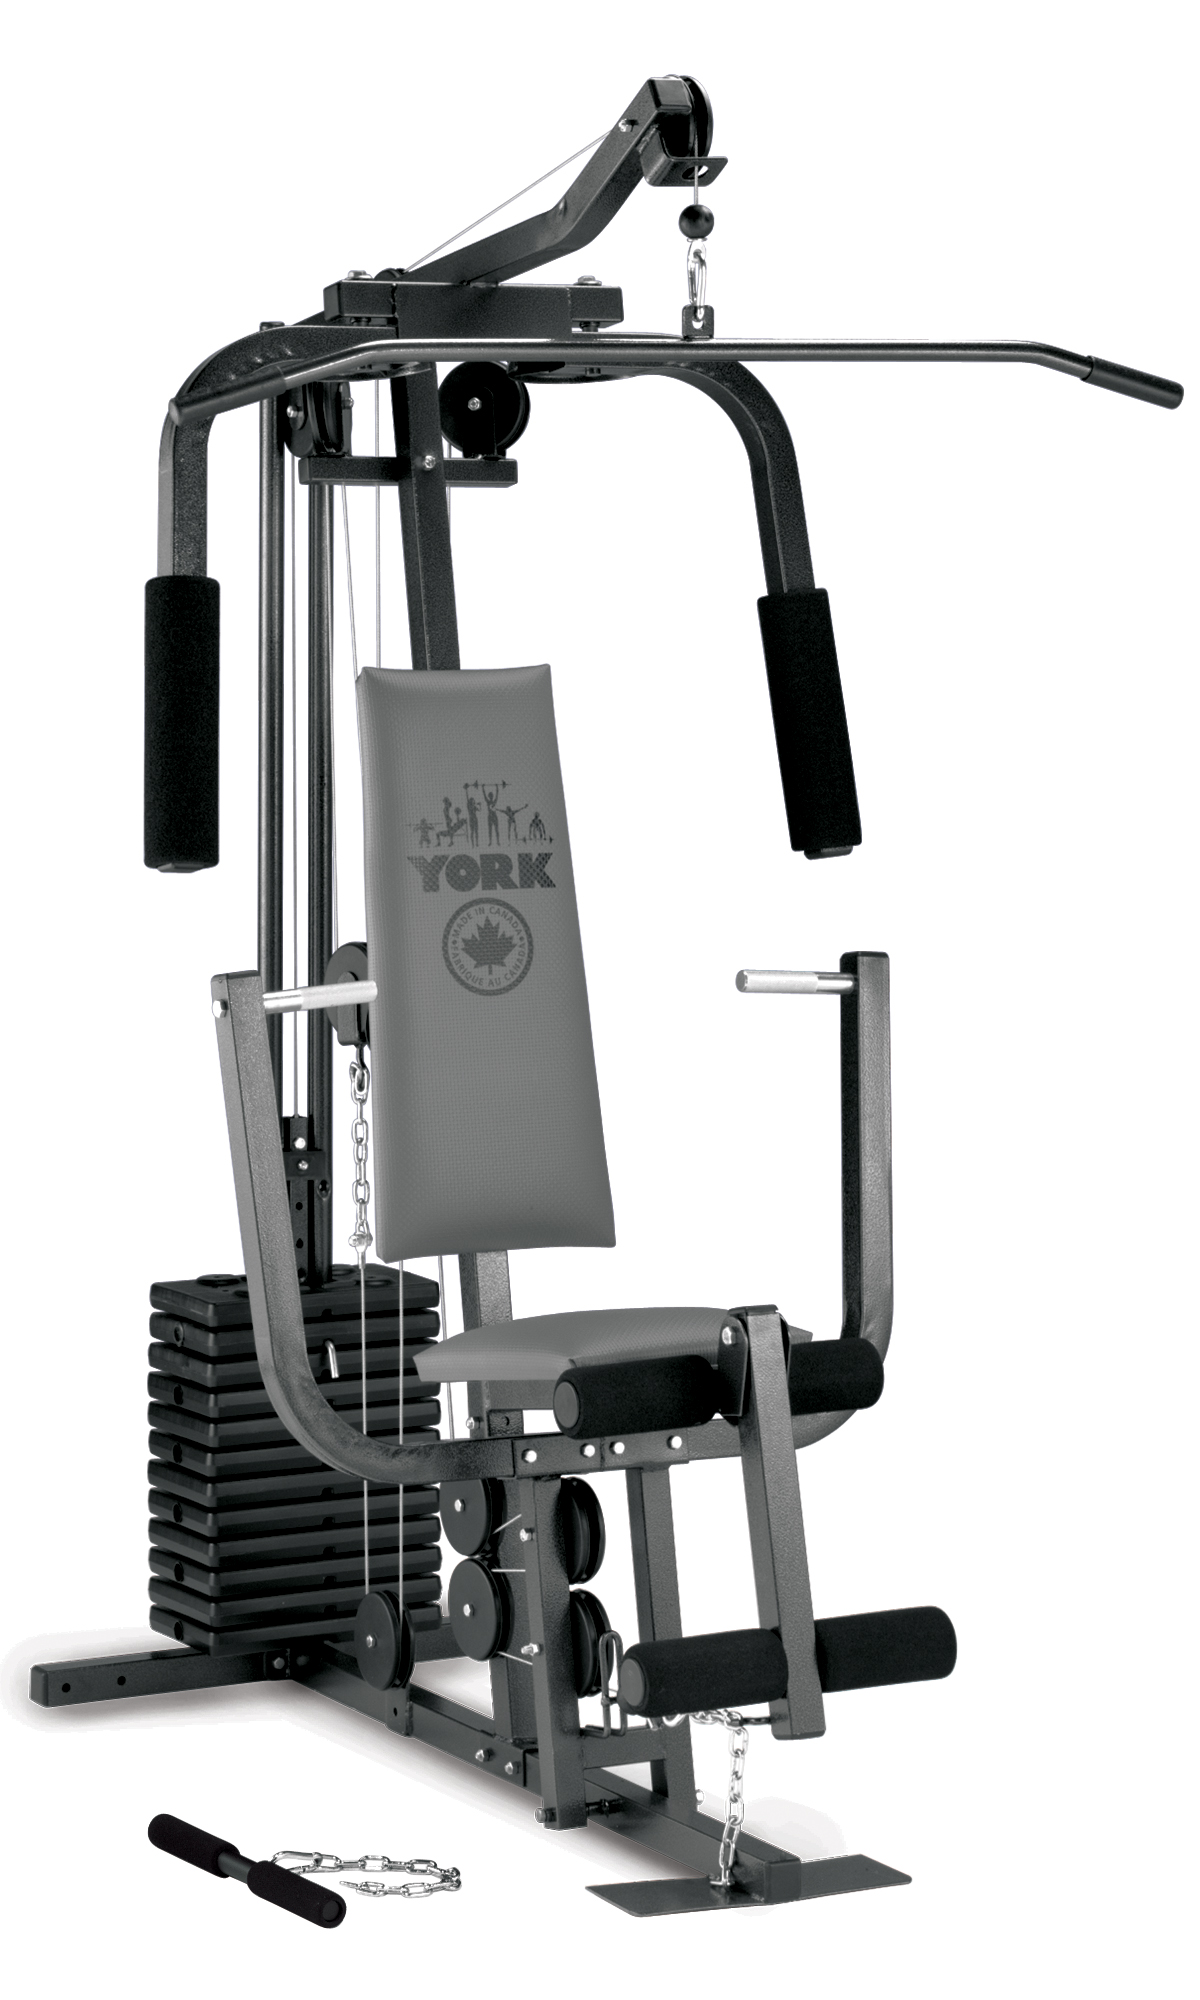 YORK 7240 Multi Gym | Home Gym Equipment & Machines